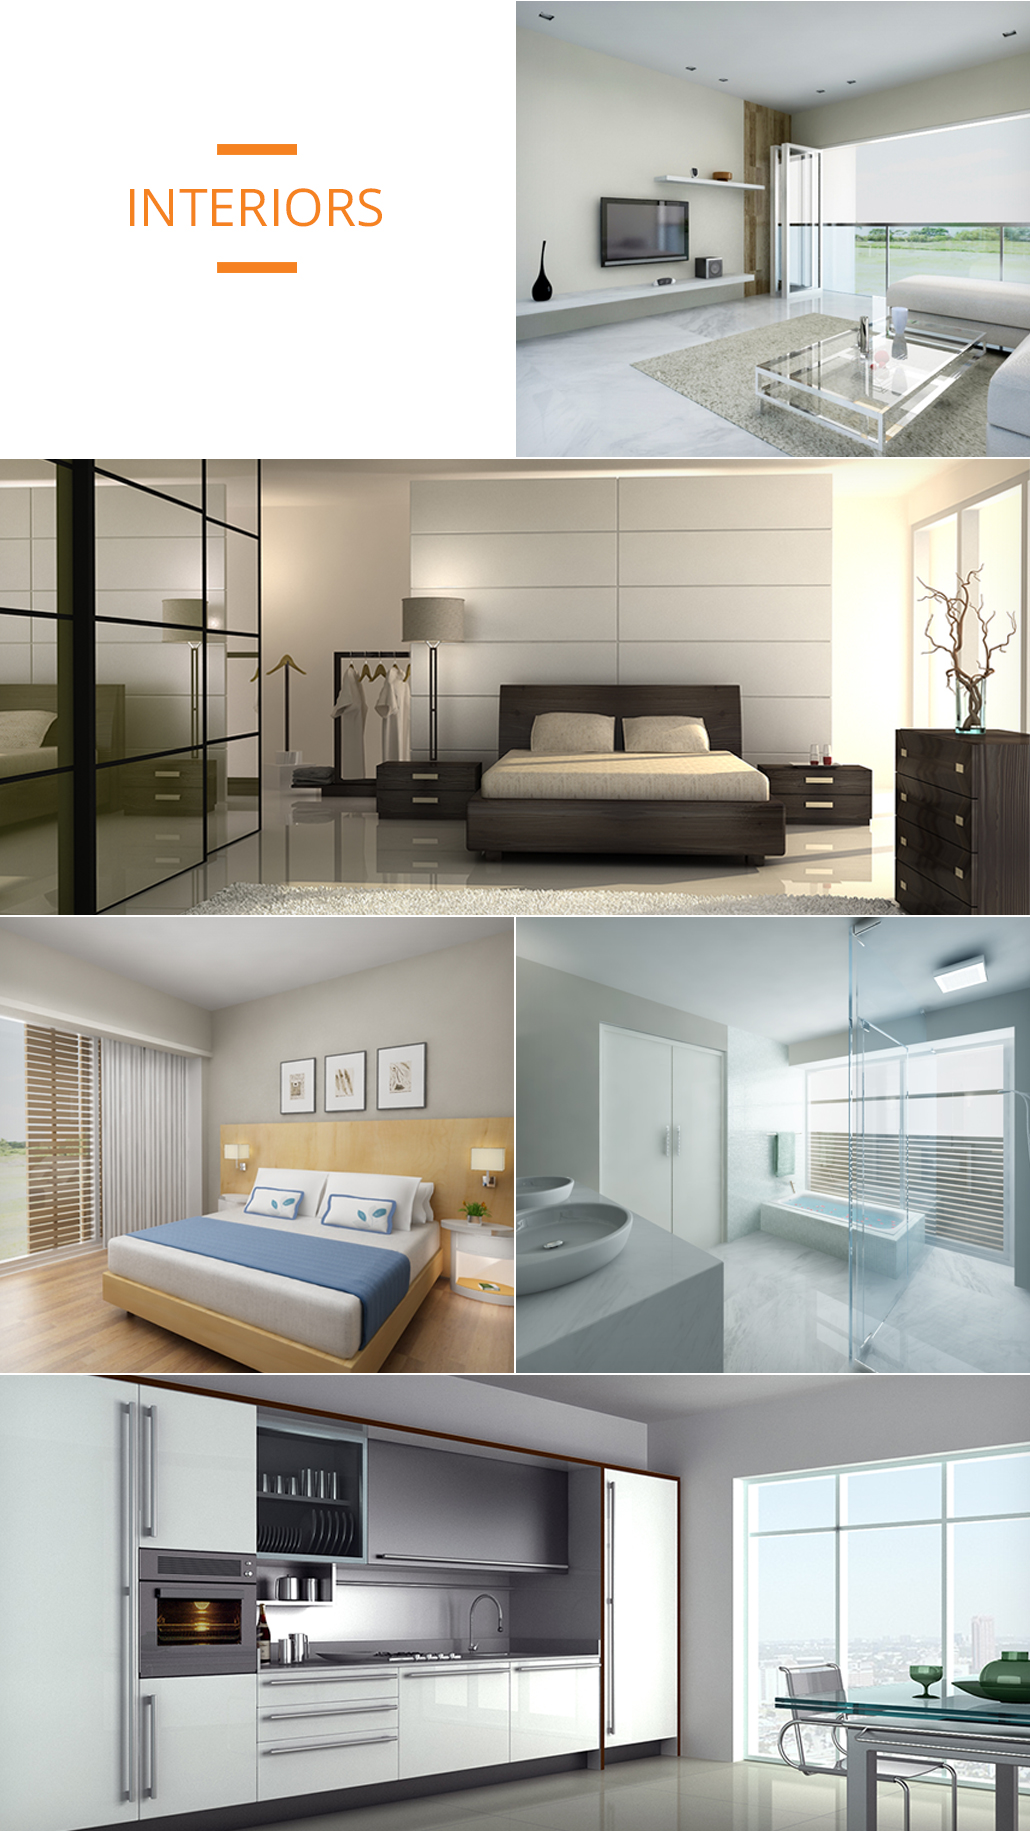 3D modeling animation package design Los Angeles